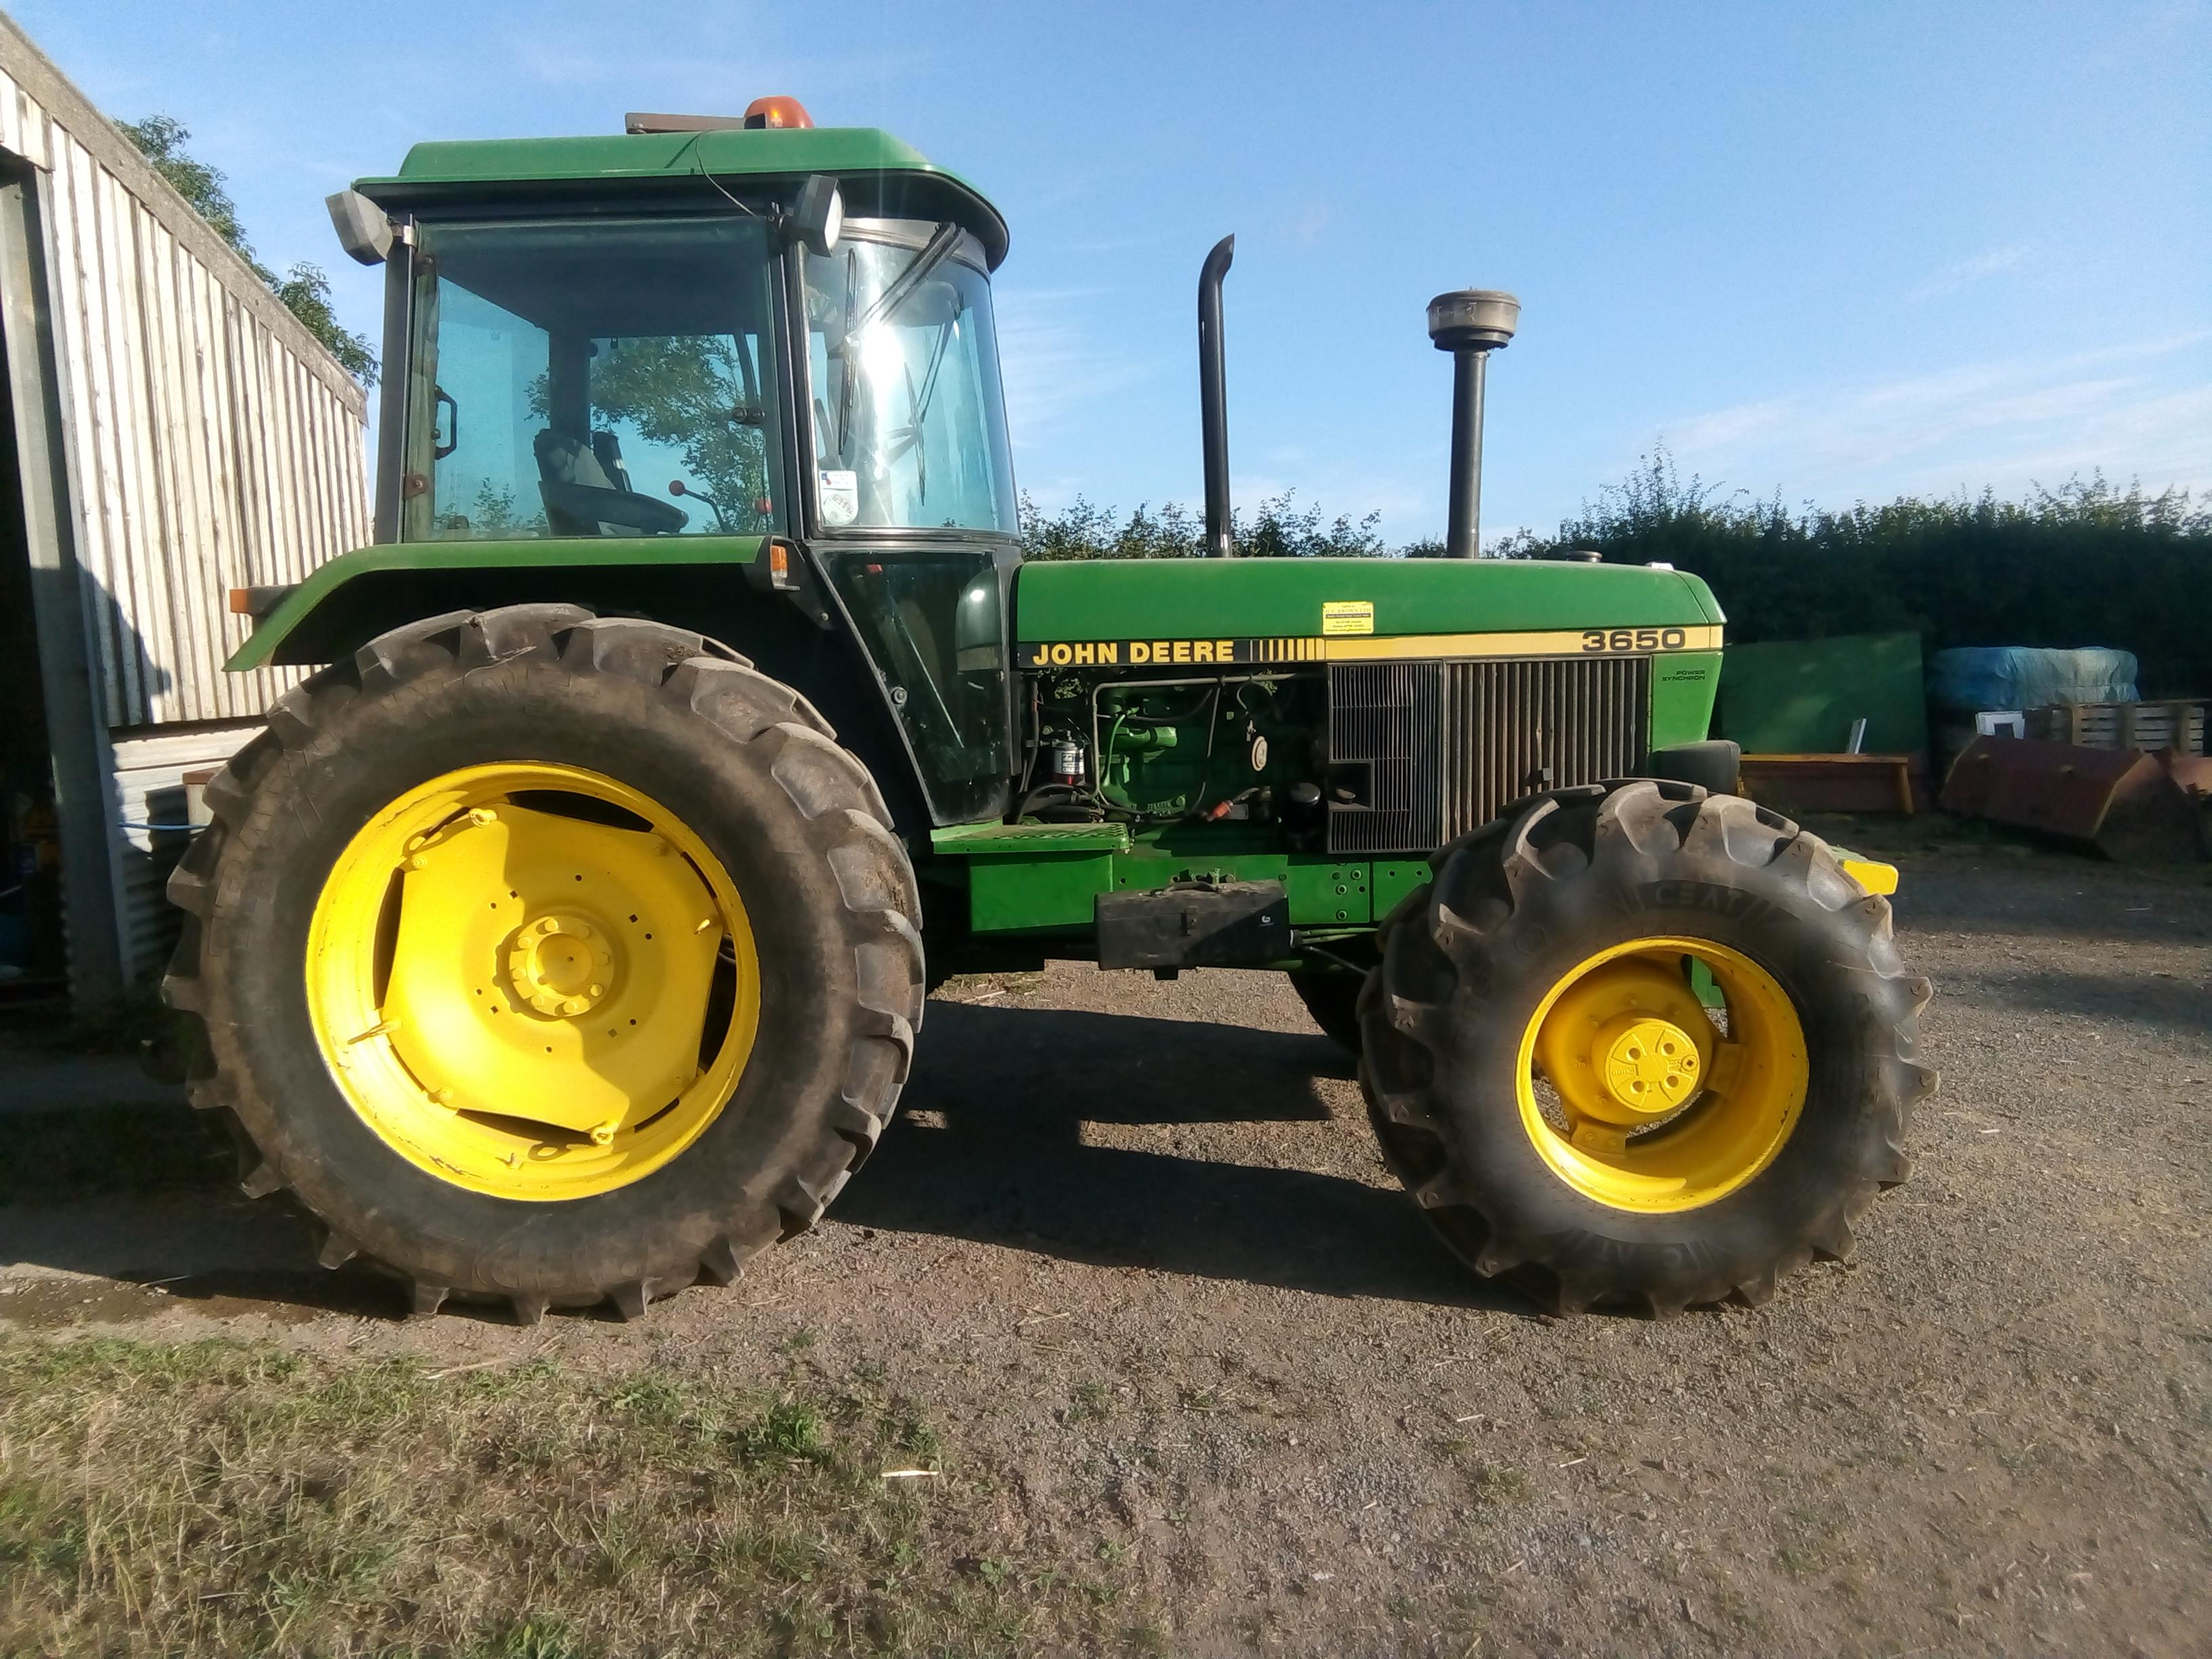 South Hams Collective Machinery Sale on Saturday 31st August 2019